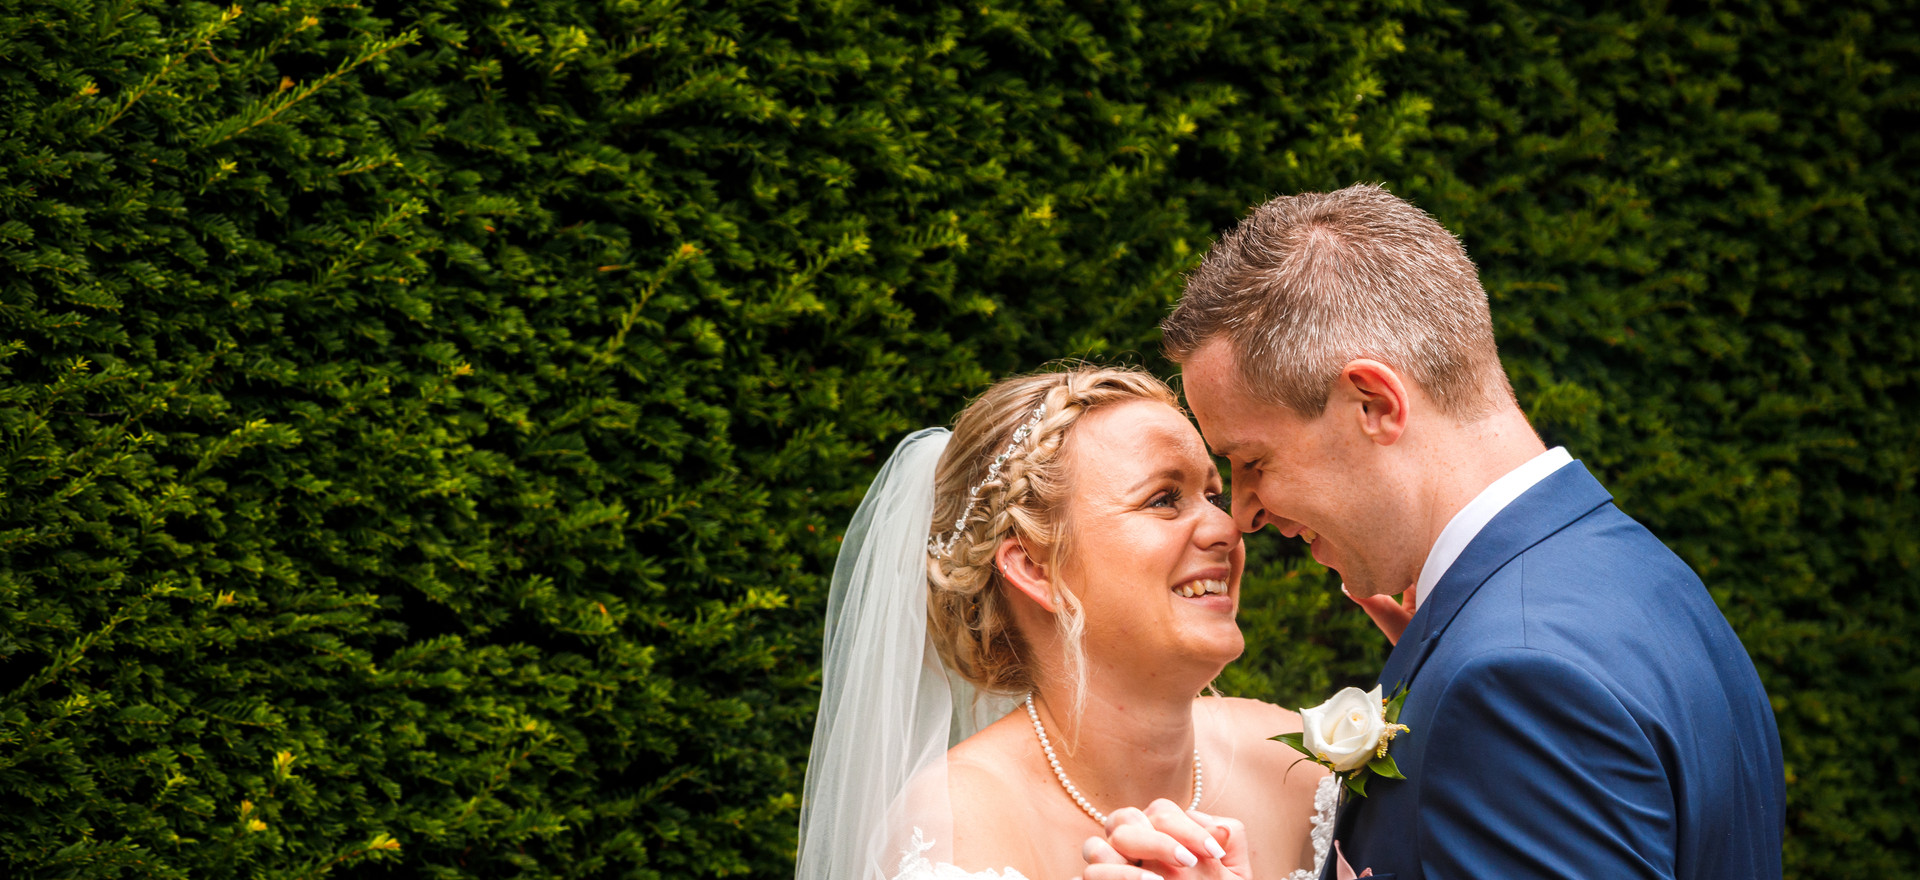 Allington Castle Wedding photographer Kent